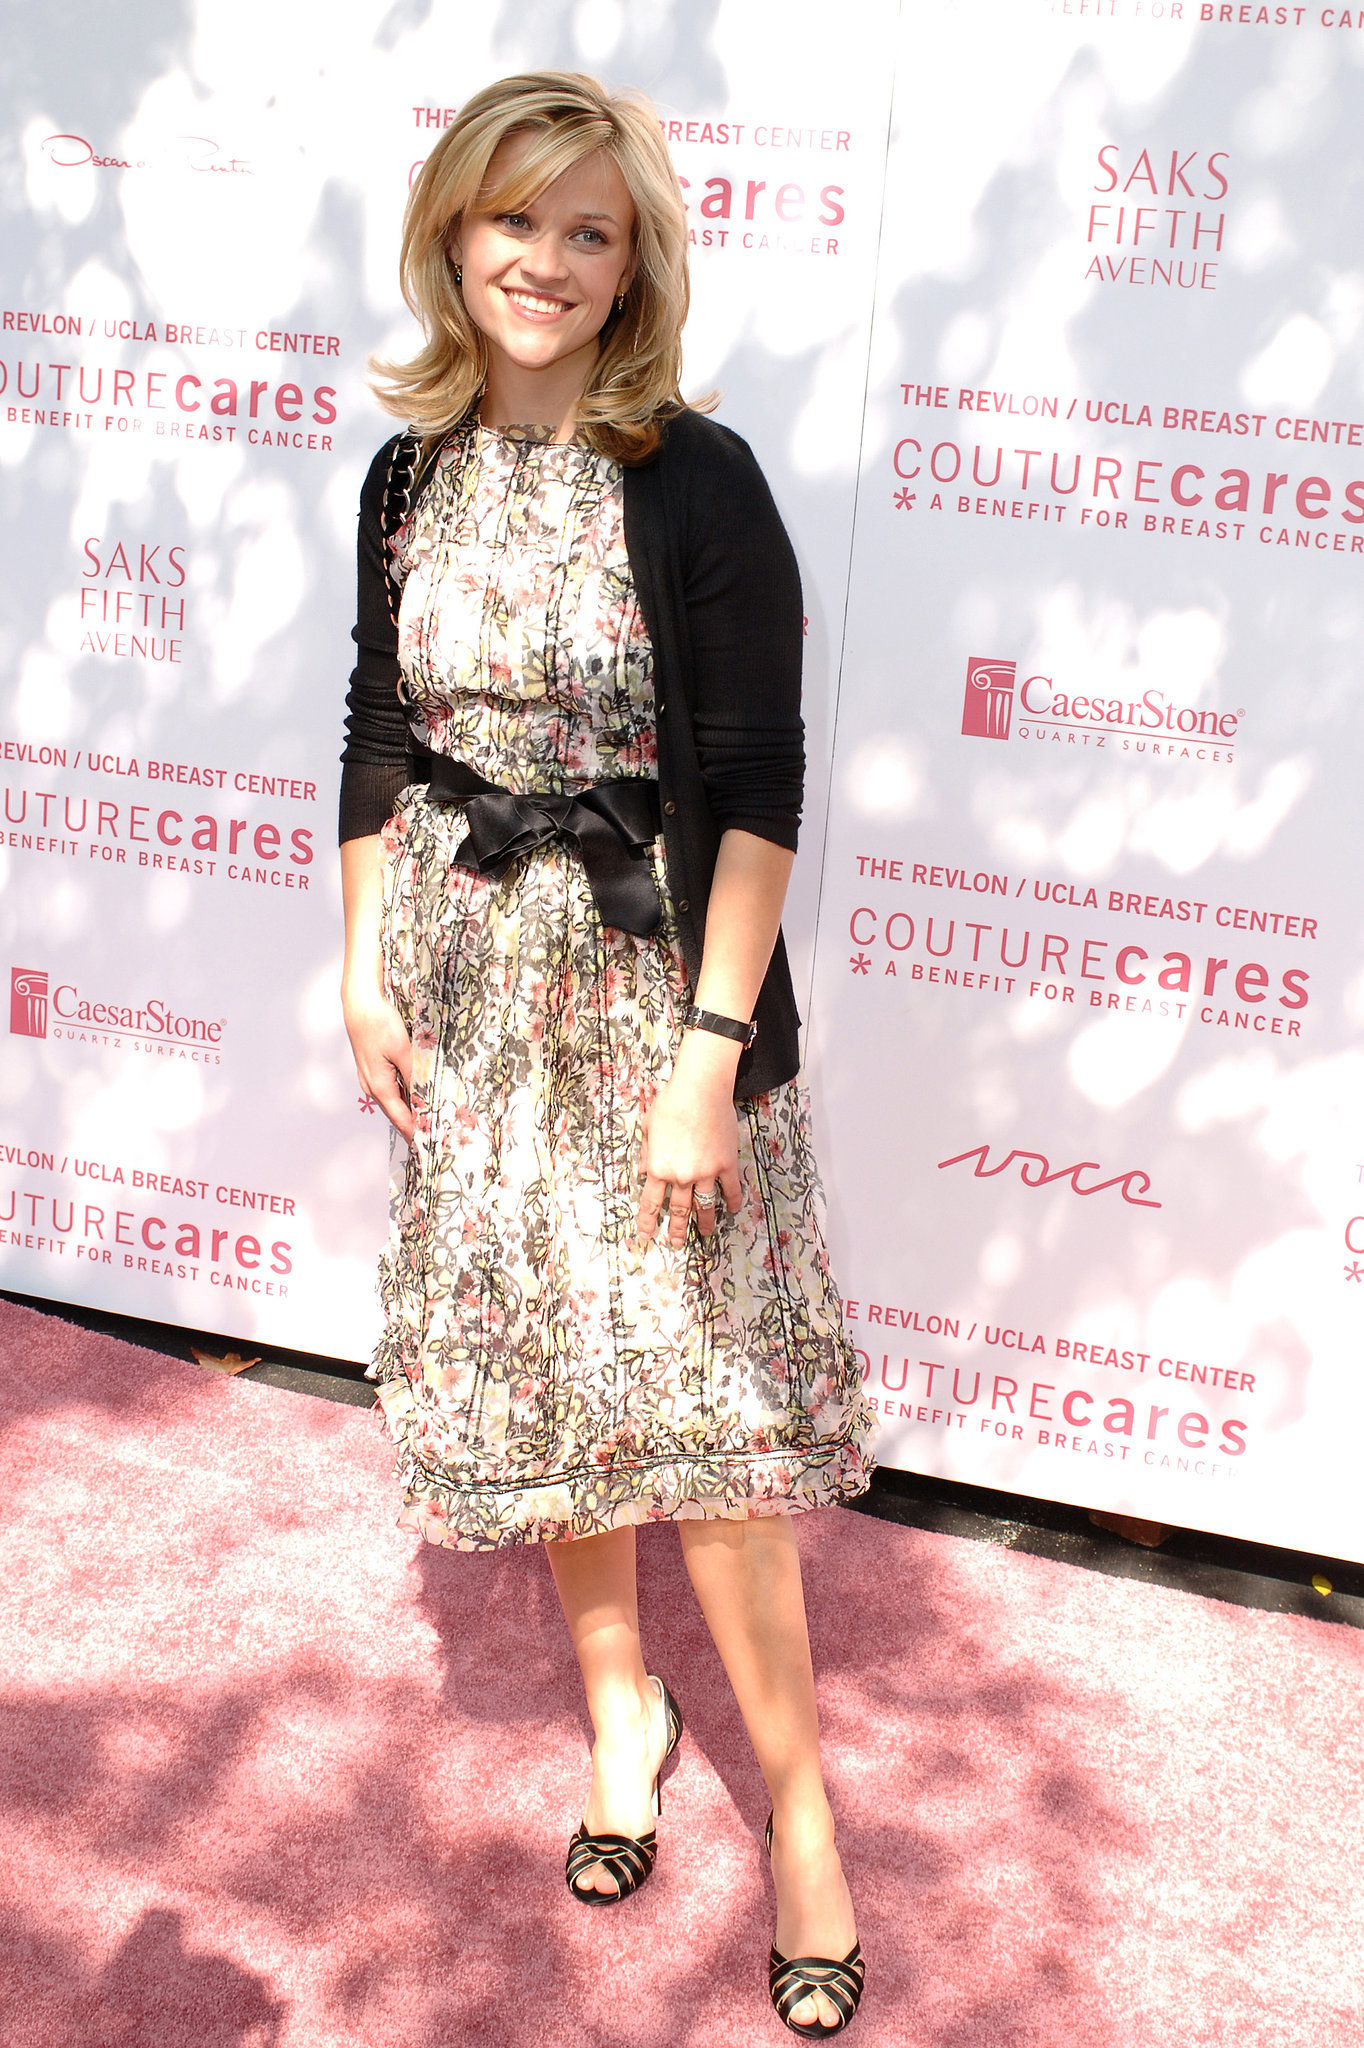 Reese Witherspoon in Floral Dress and Black Cardigan